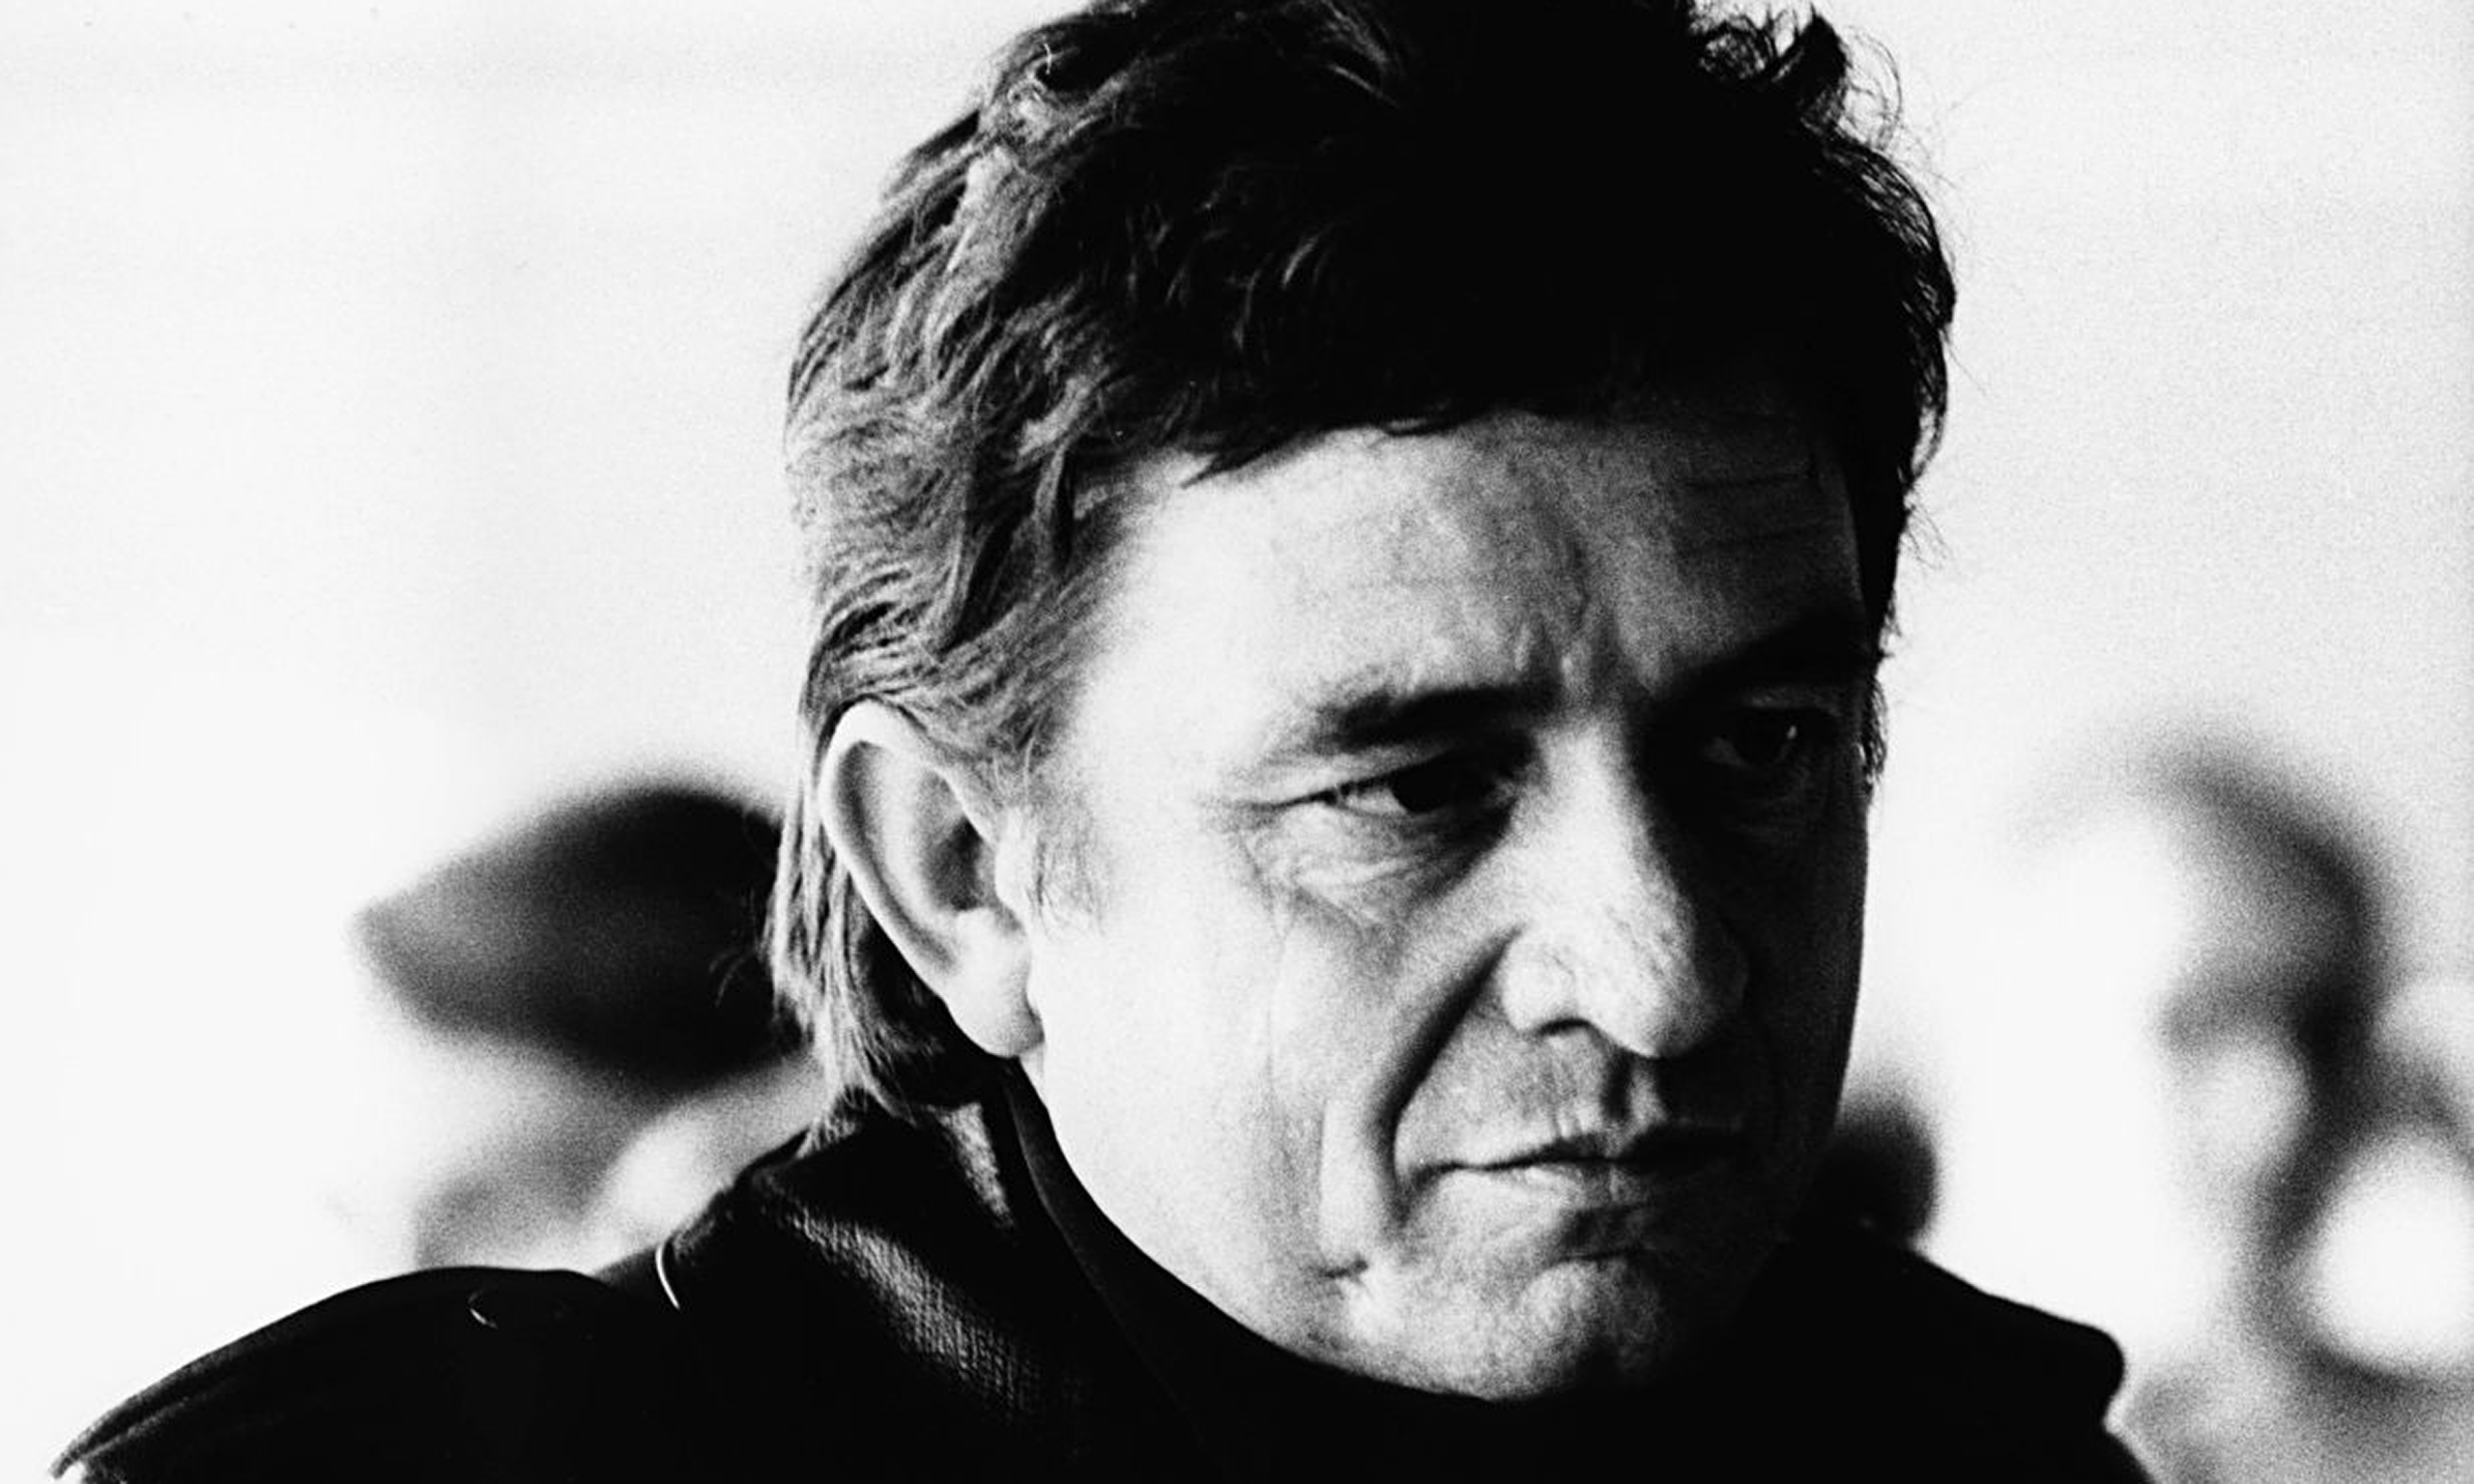 How Johnny Cash became an even bigger star after his death | Music ...